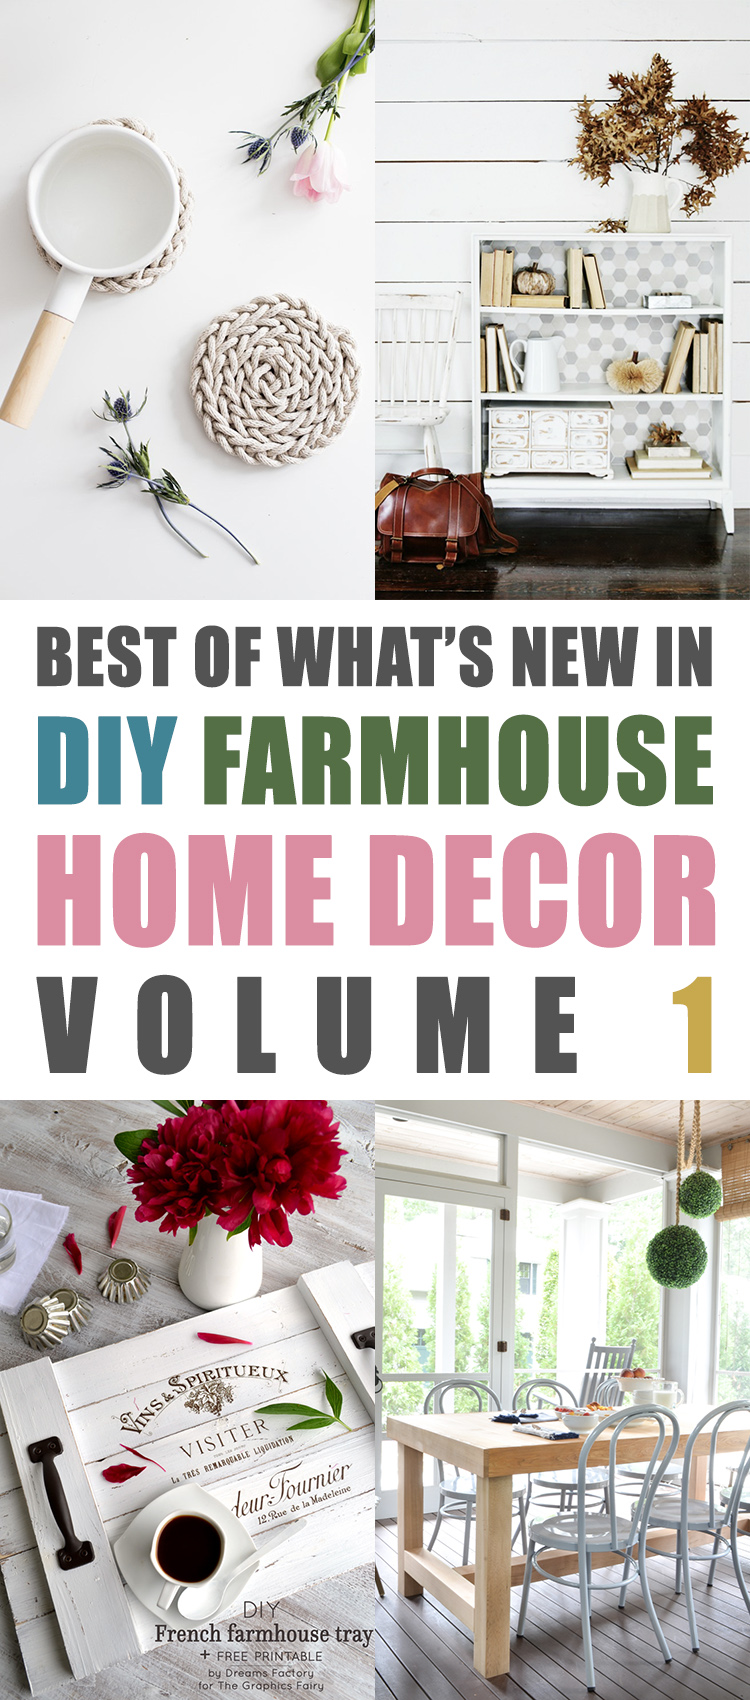 The Best of What's New in DIY Farmhouse Home Decor Volume 1